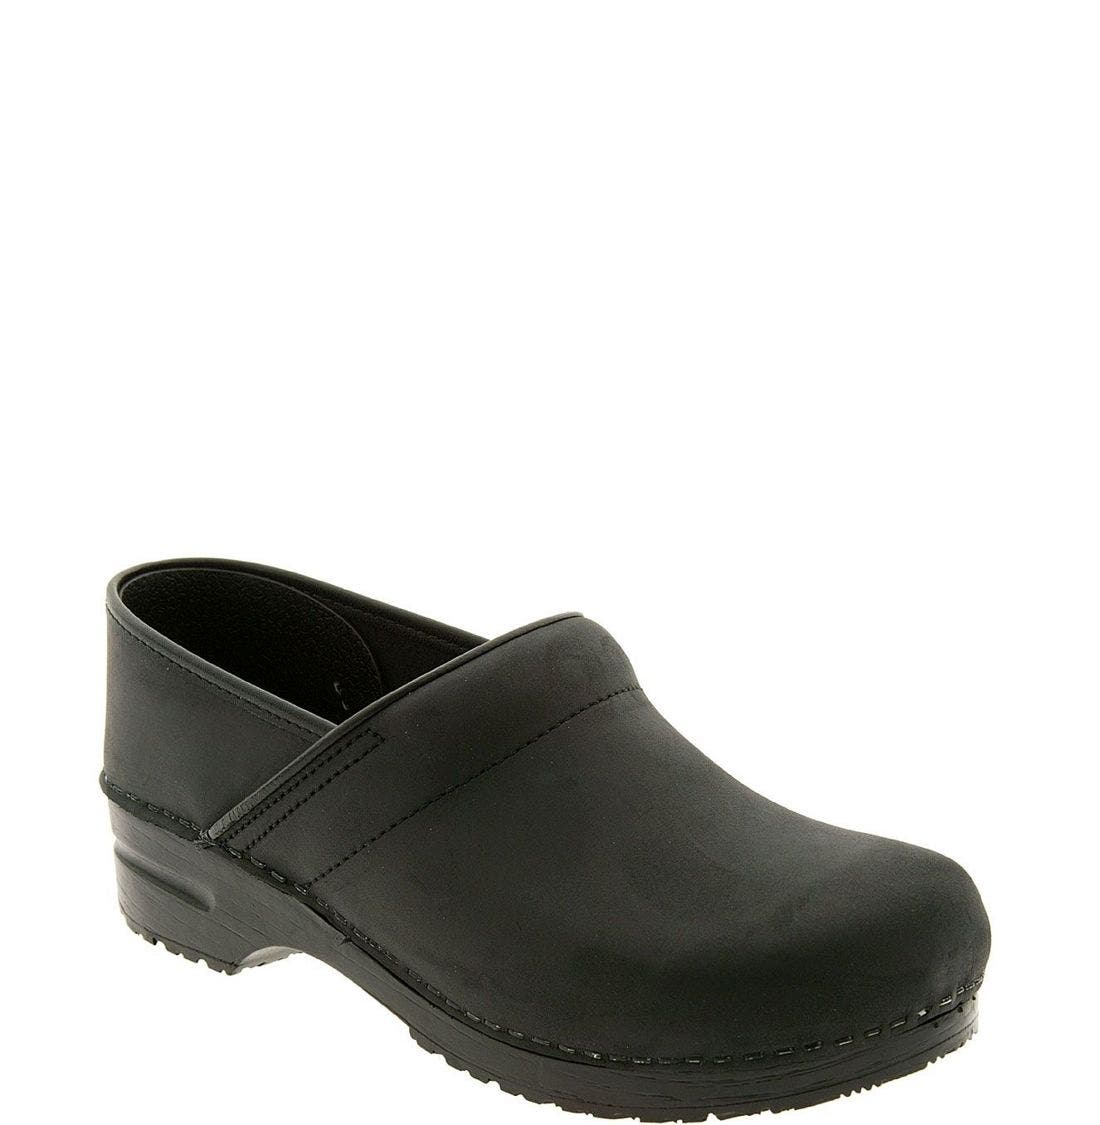 'Professional' Oiled Leather Clog,                             Main thumbnail 1, color,                             BLACK OILED